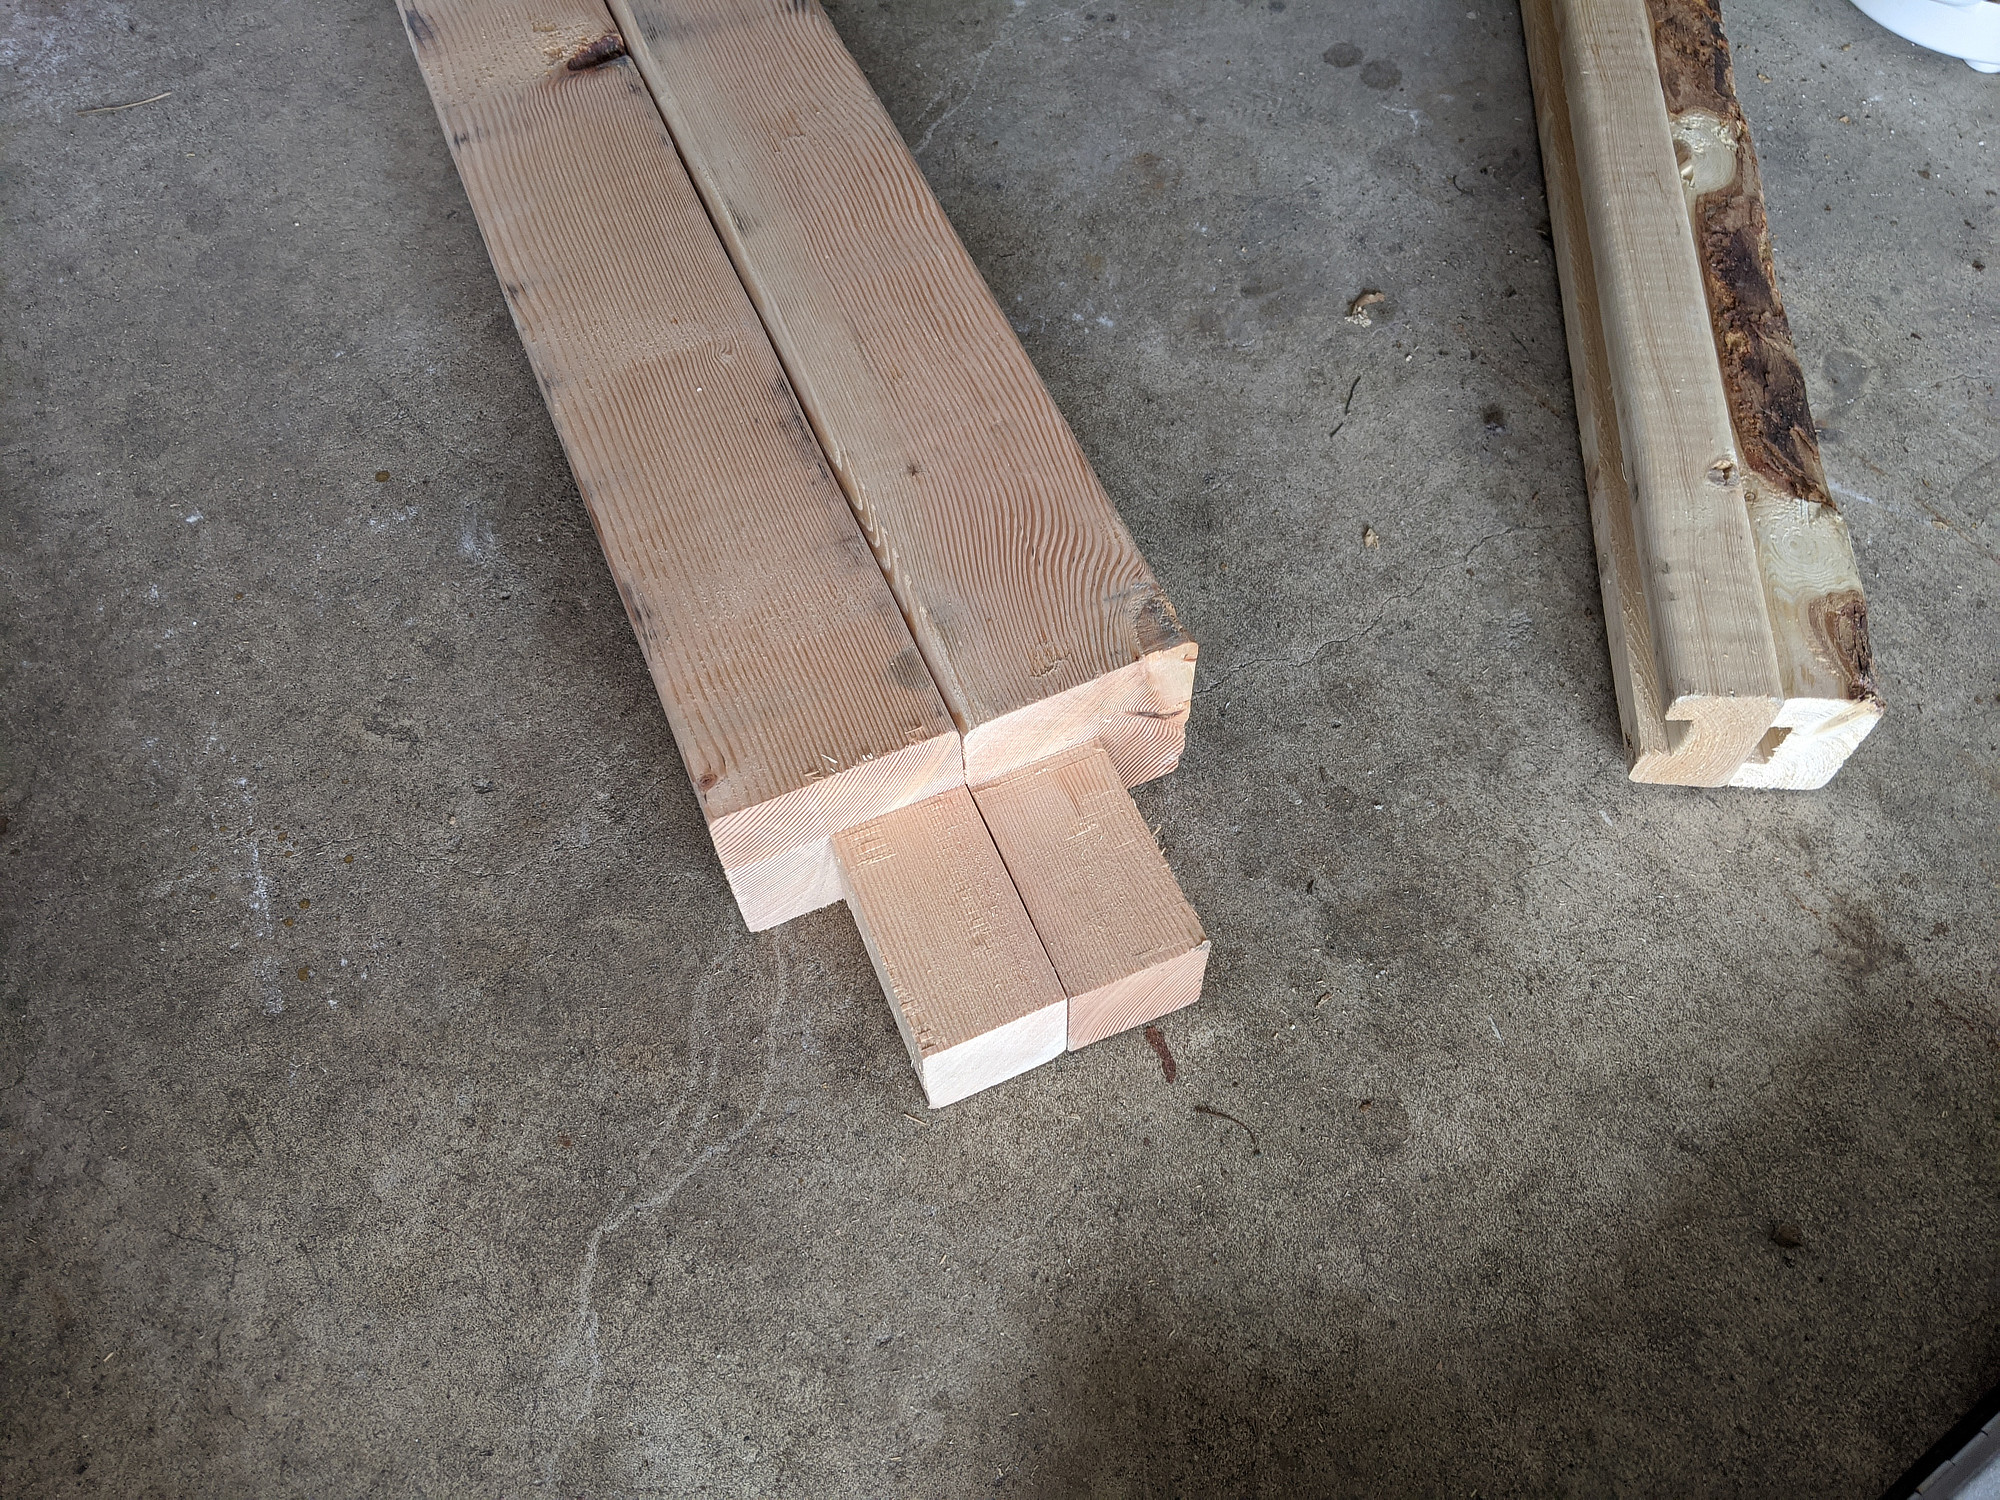 Cut 4x4s for assembly